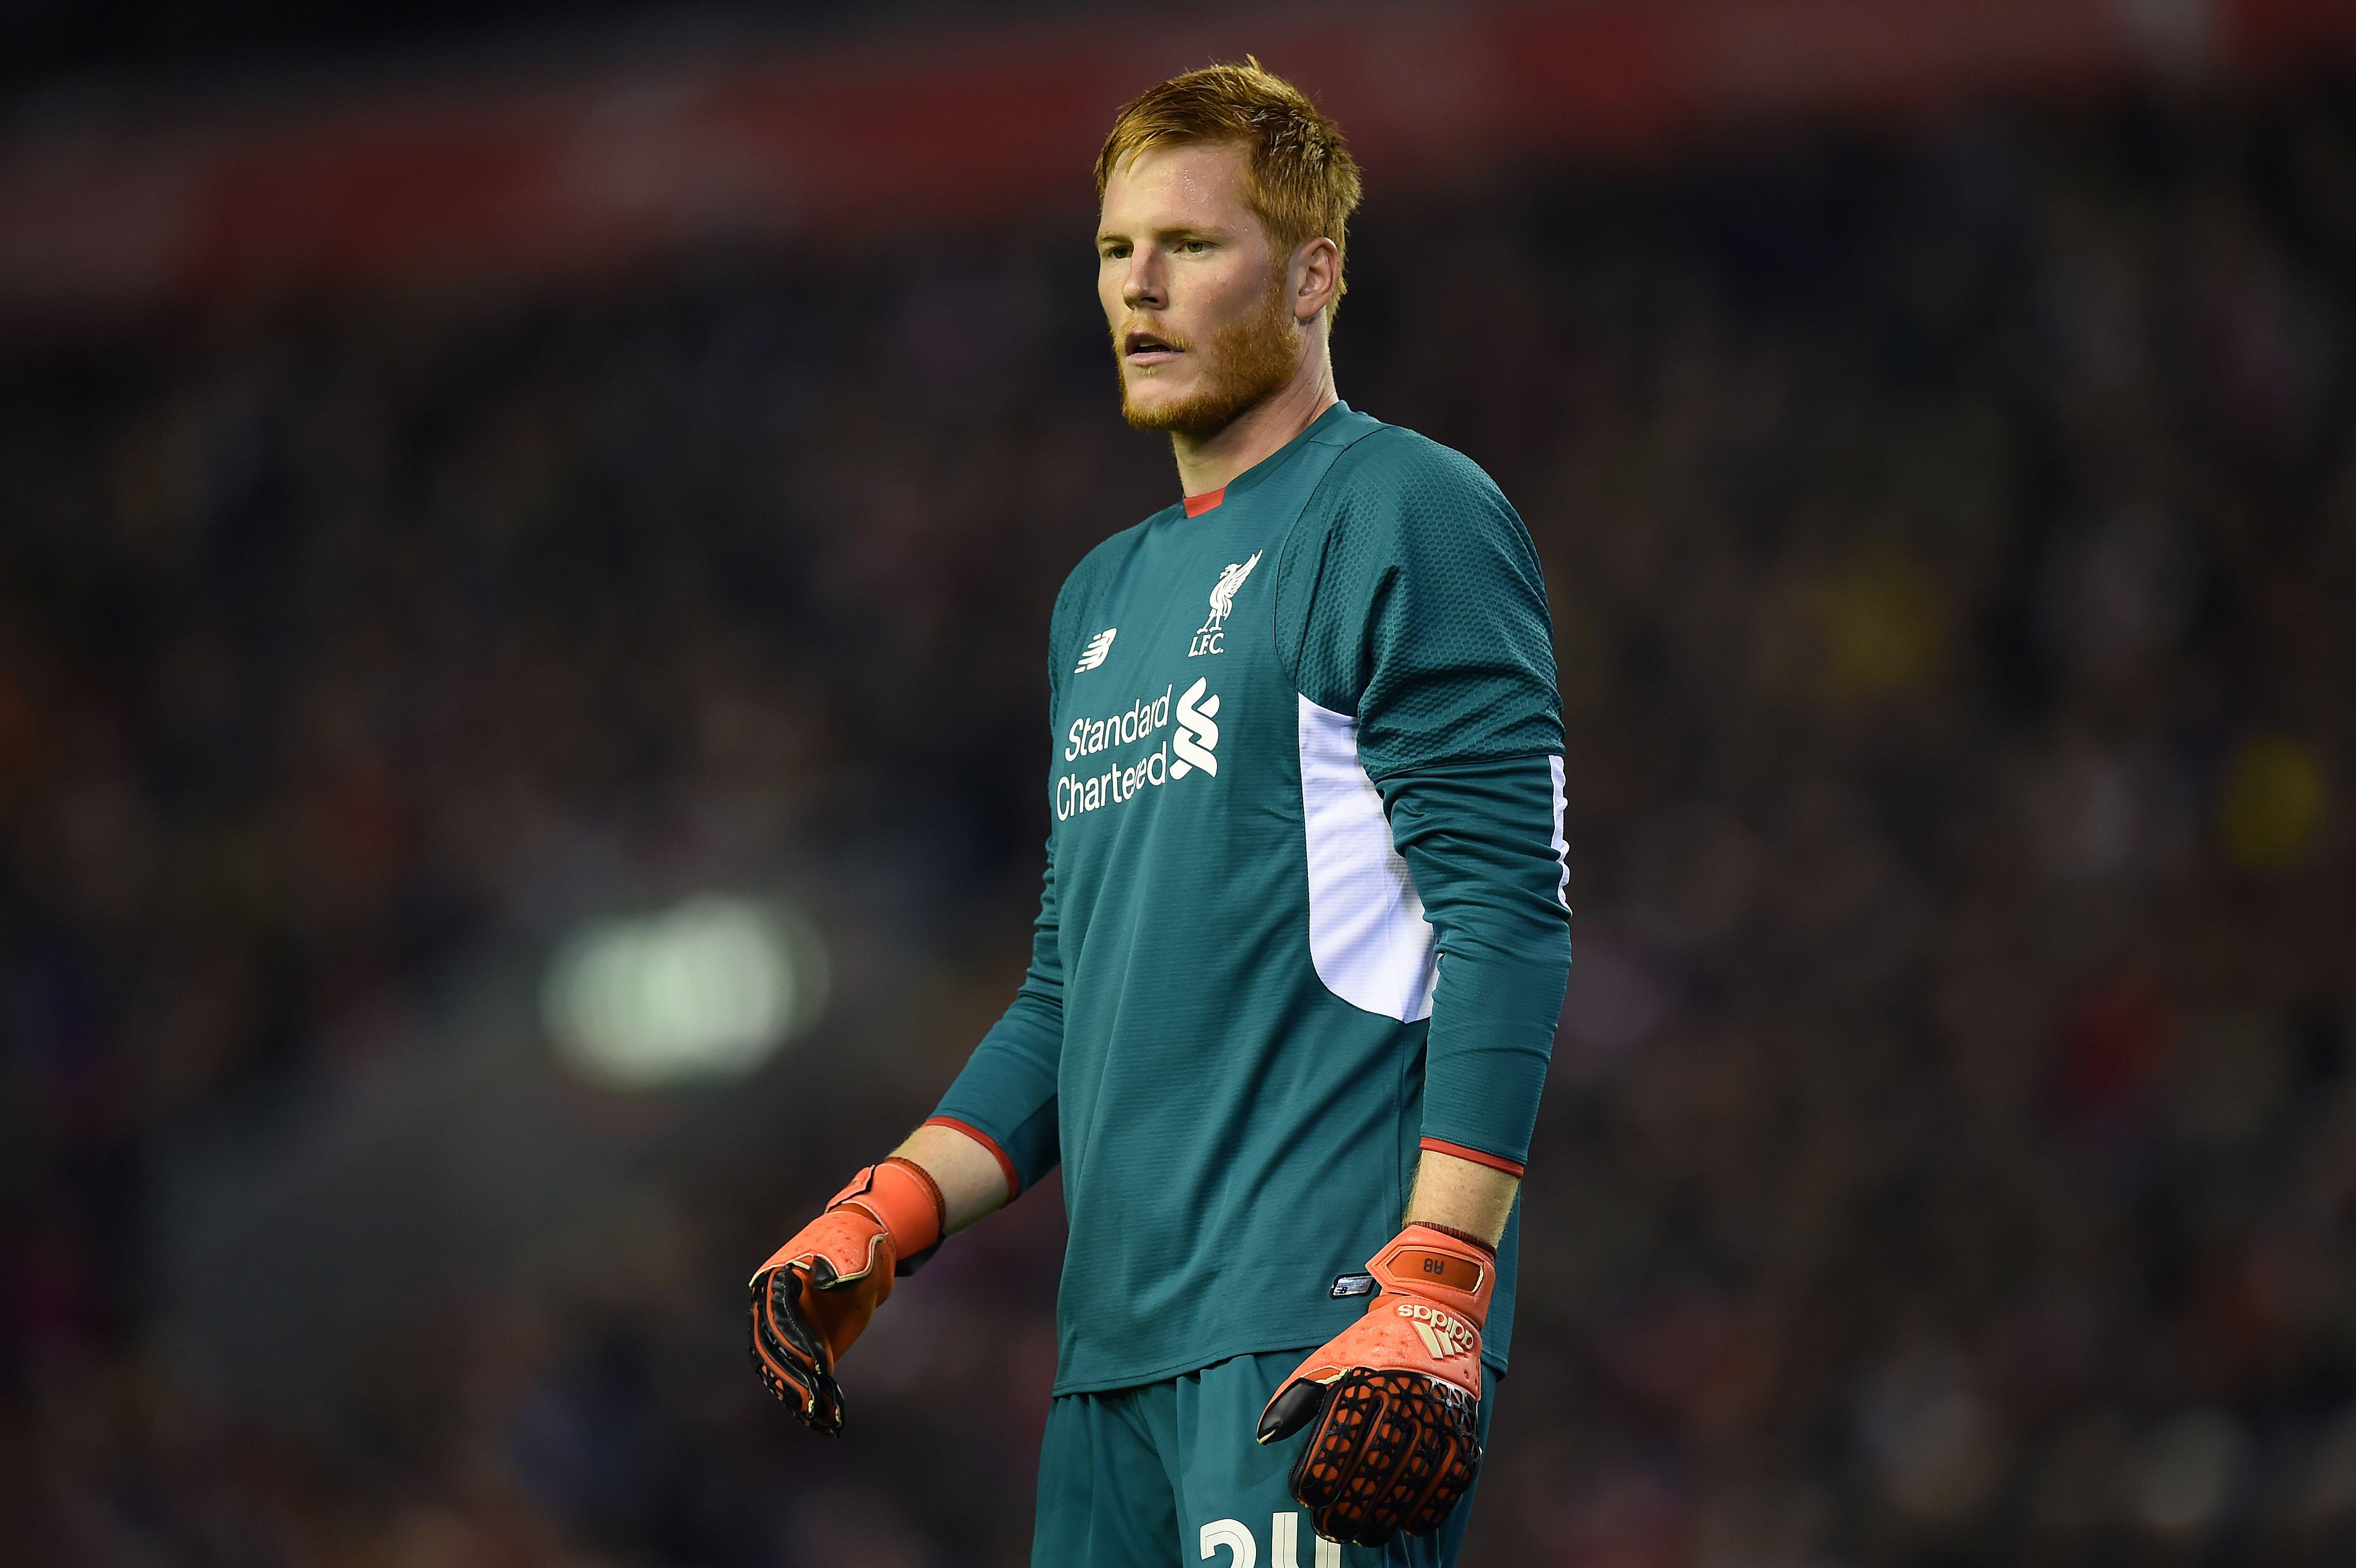 Liverpool goalkeeper Adam Bogdan slammed by fans after bizarre online Manchester United hoax